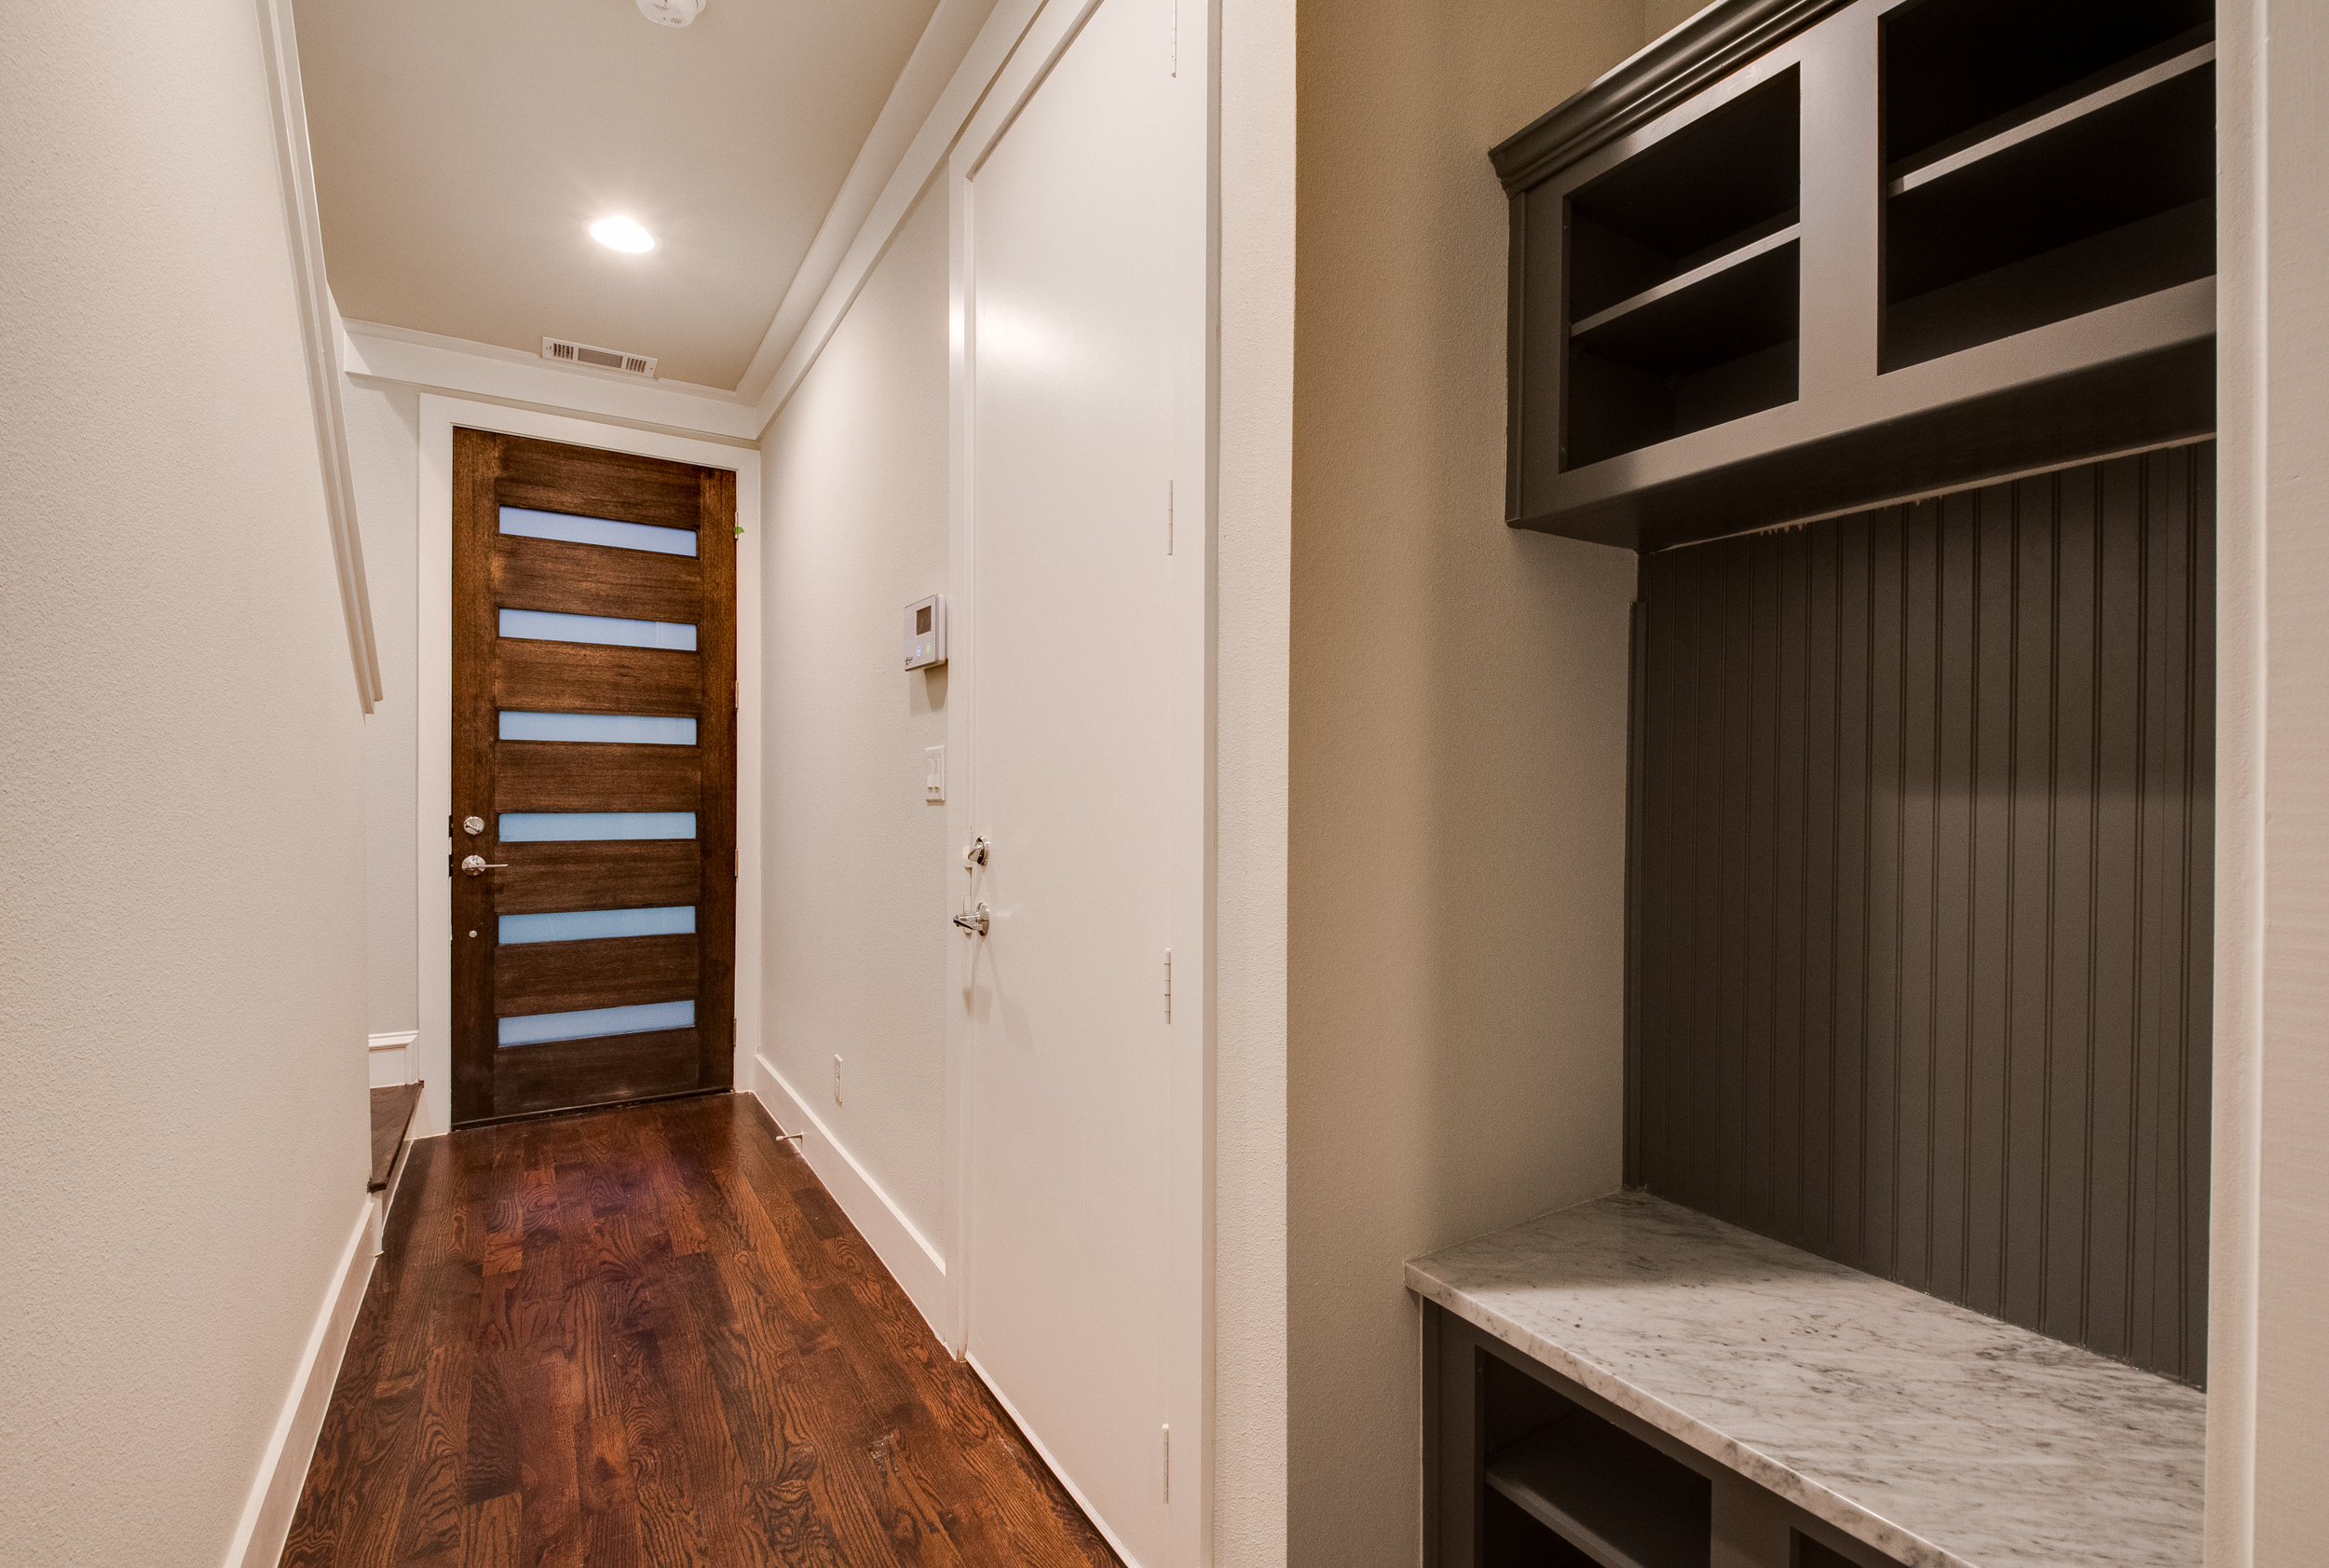 Interior view of the front entry hallway with dark wooden floors and a black shelving unit with a bench seat